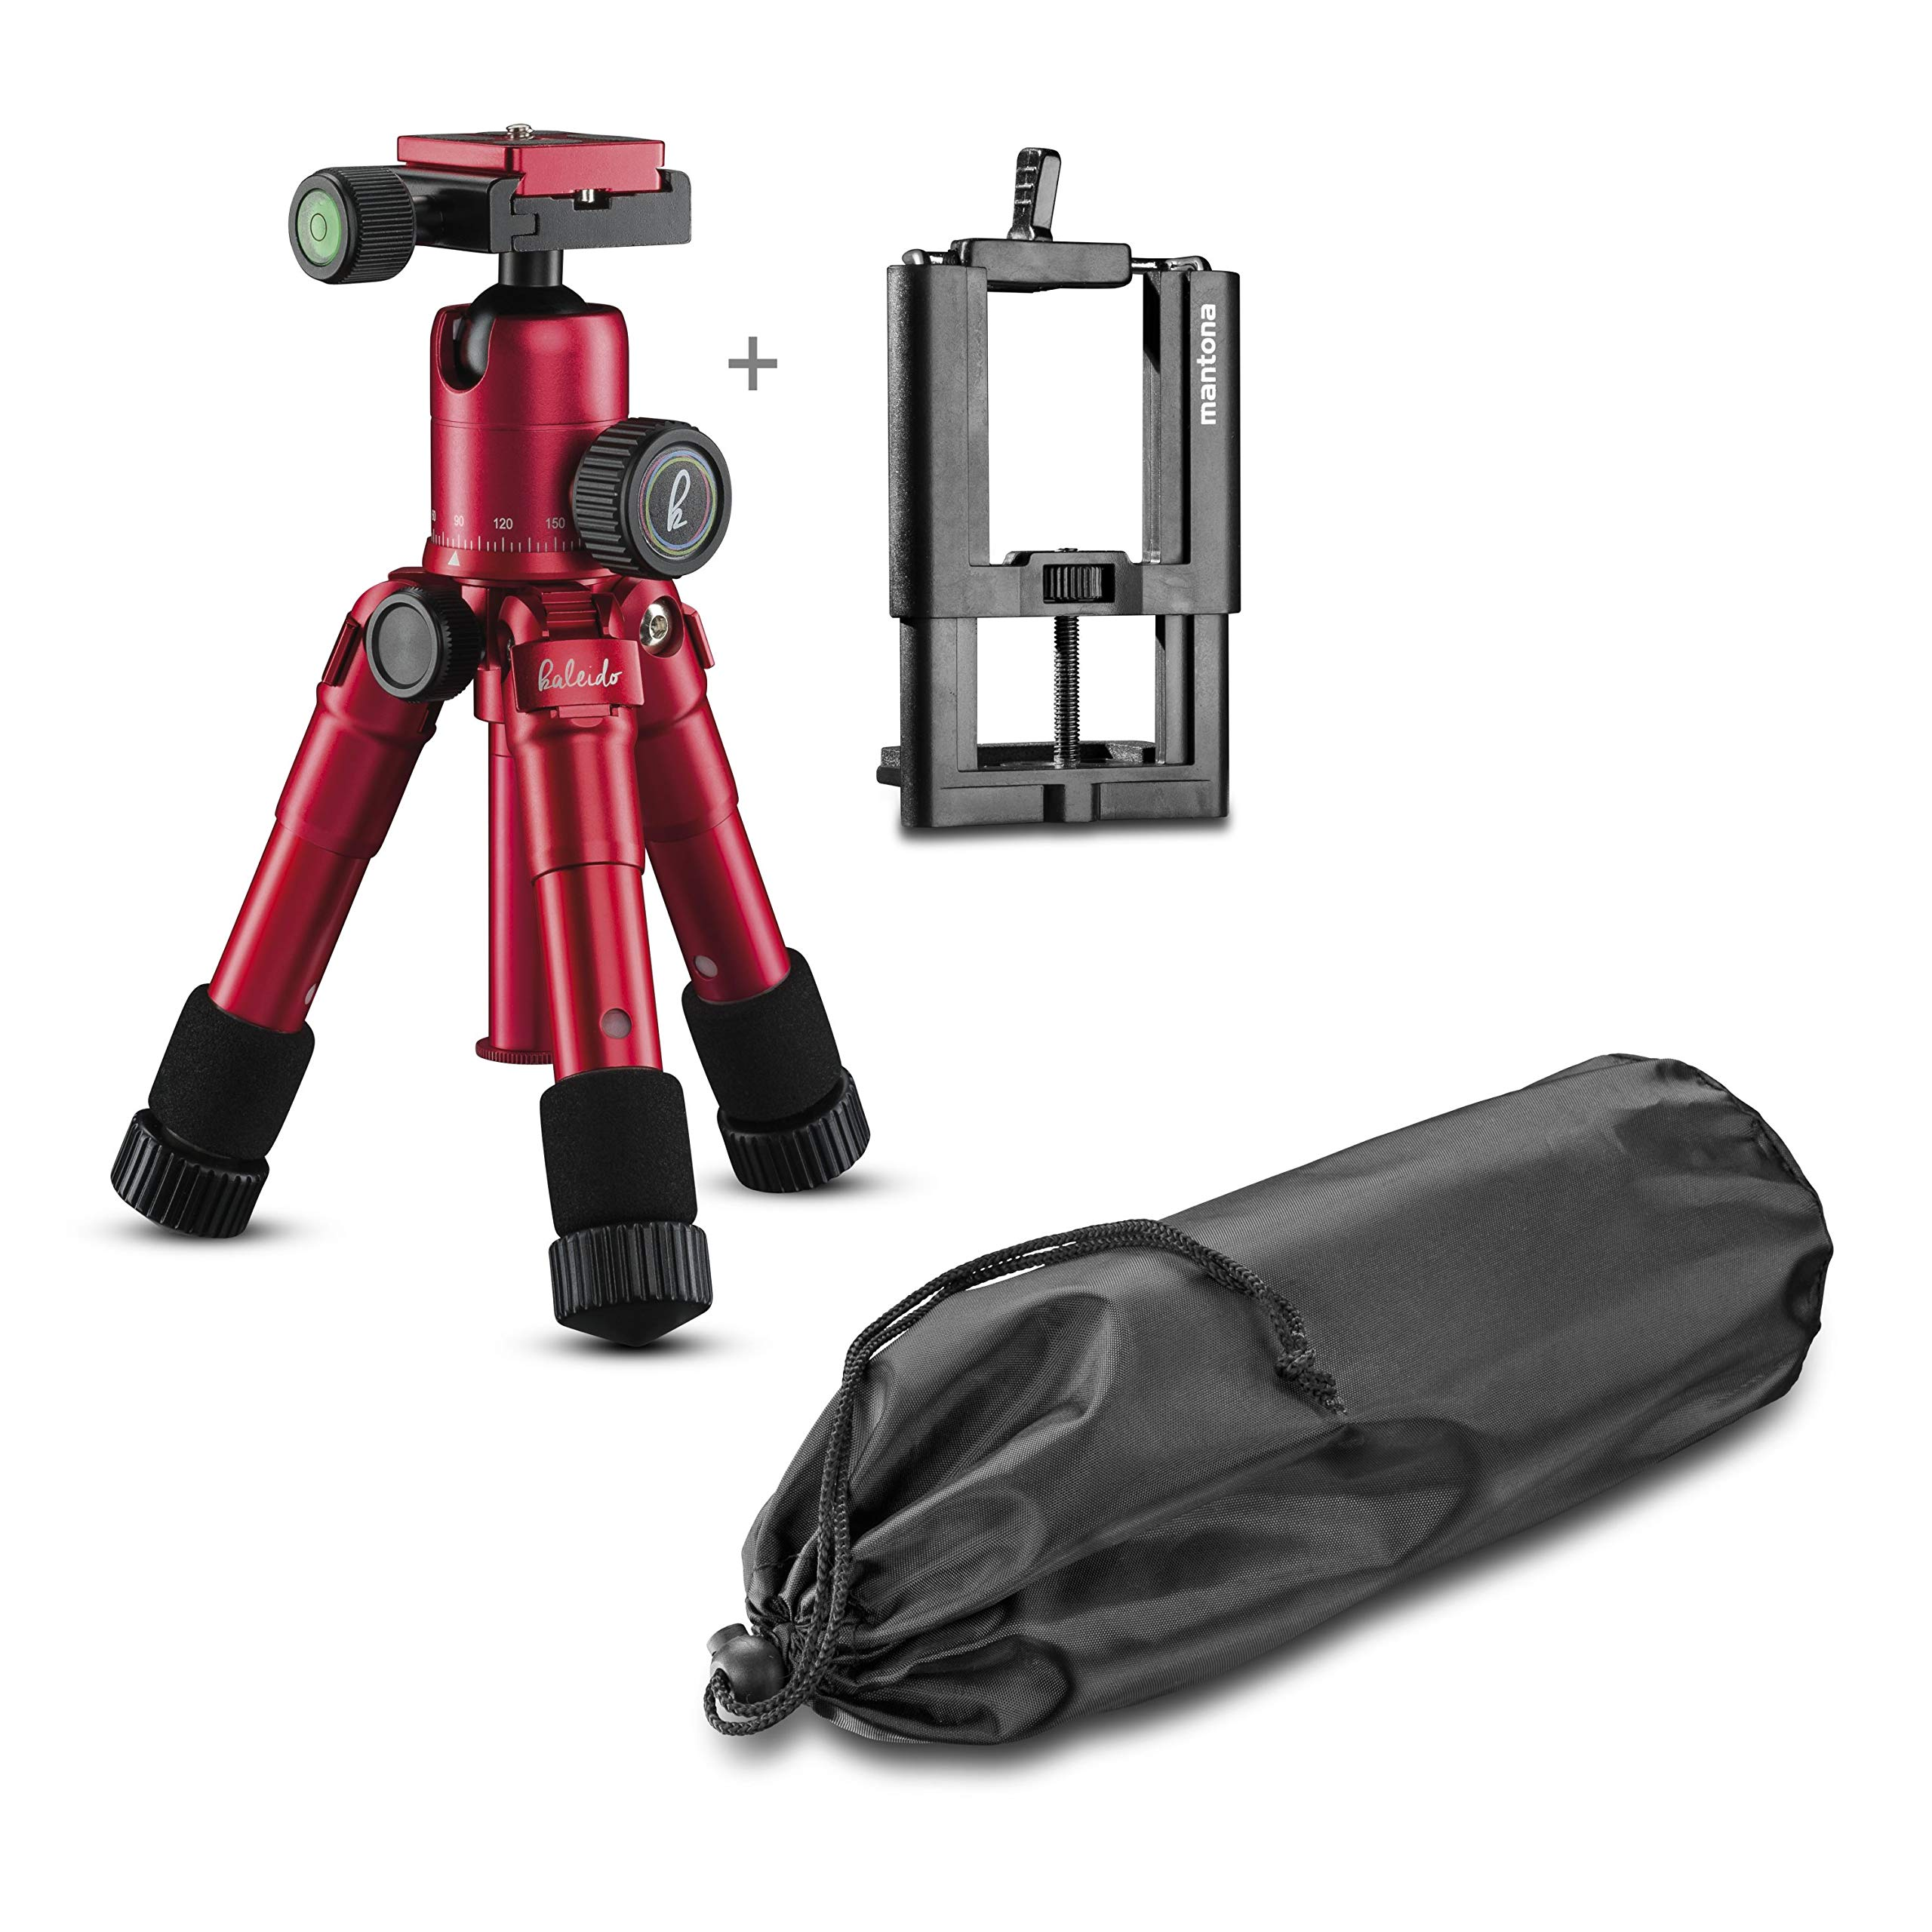 Mantona Kaleido 21185 Mini Photo/Table/Travel Tripod with Ball Head with Quick Release Plate and Carry Case